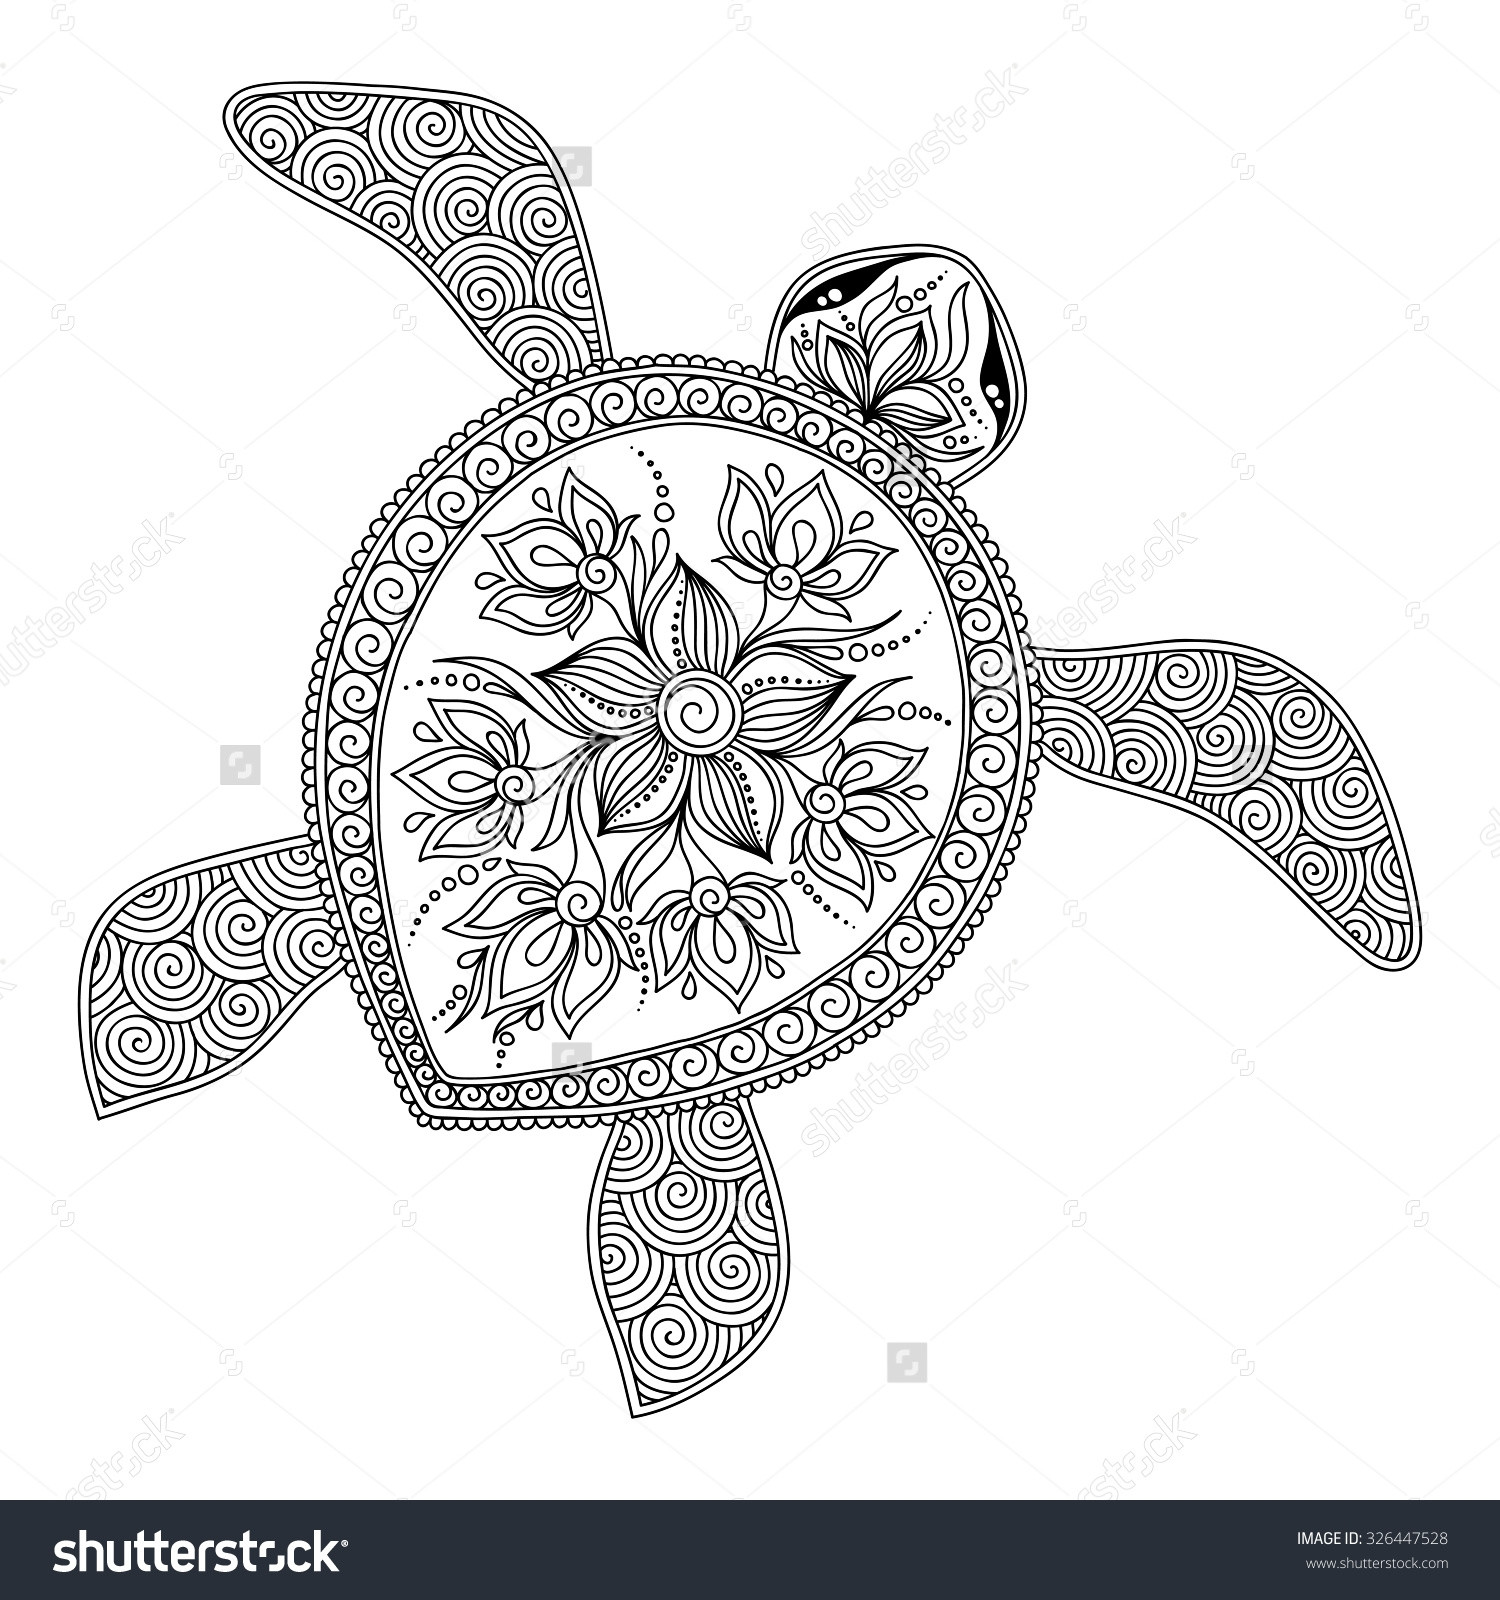 Best ideas about Turtle Coloring Pages For Adults . Save or Pin Sea Turtle Adult Coloring Pages Free Now.